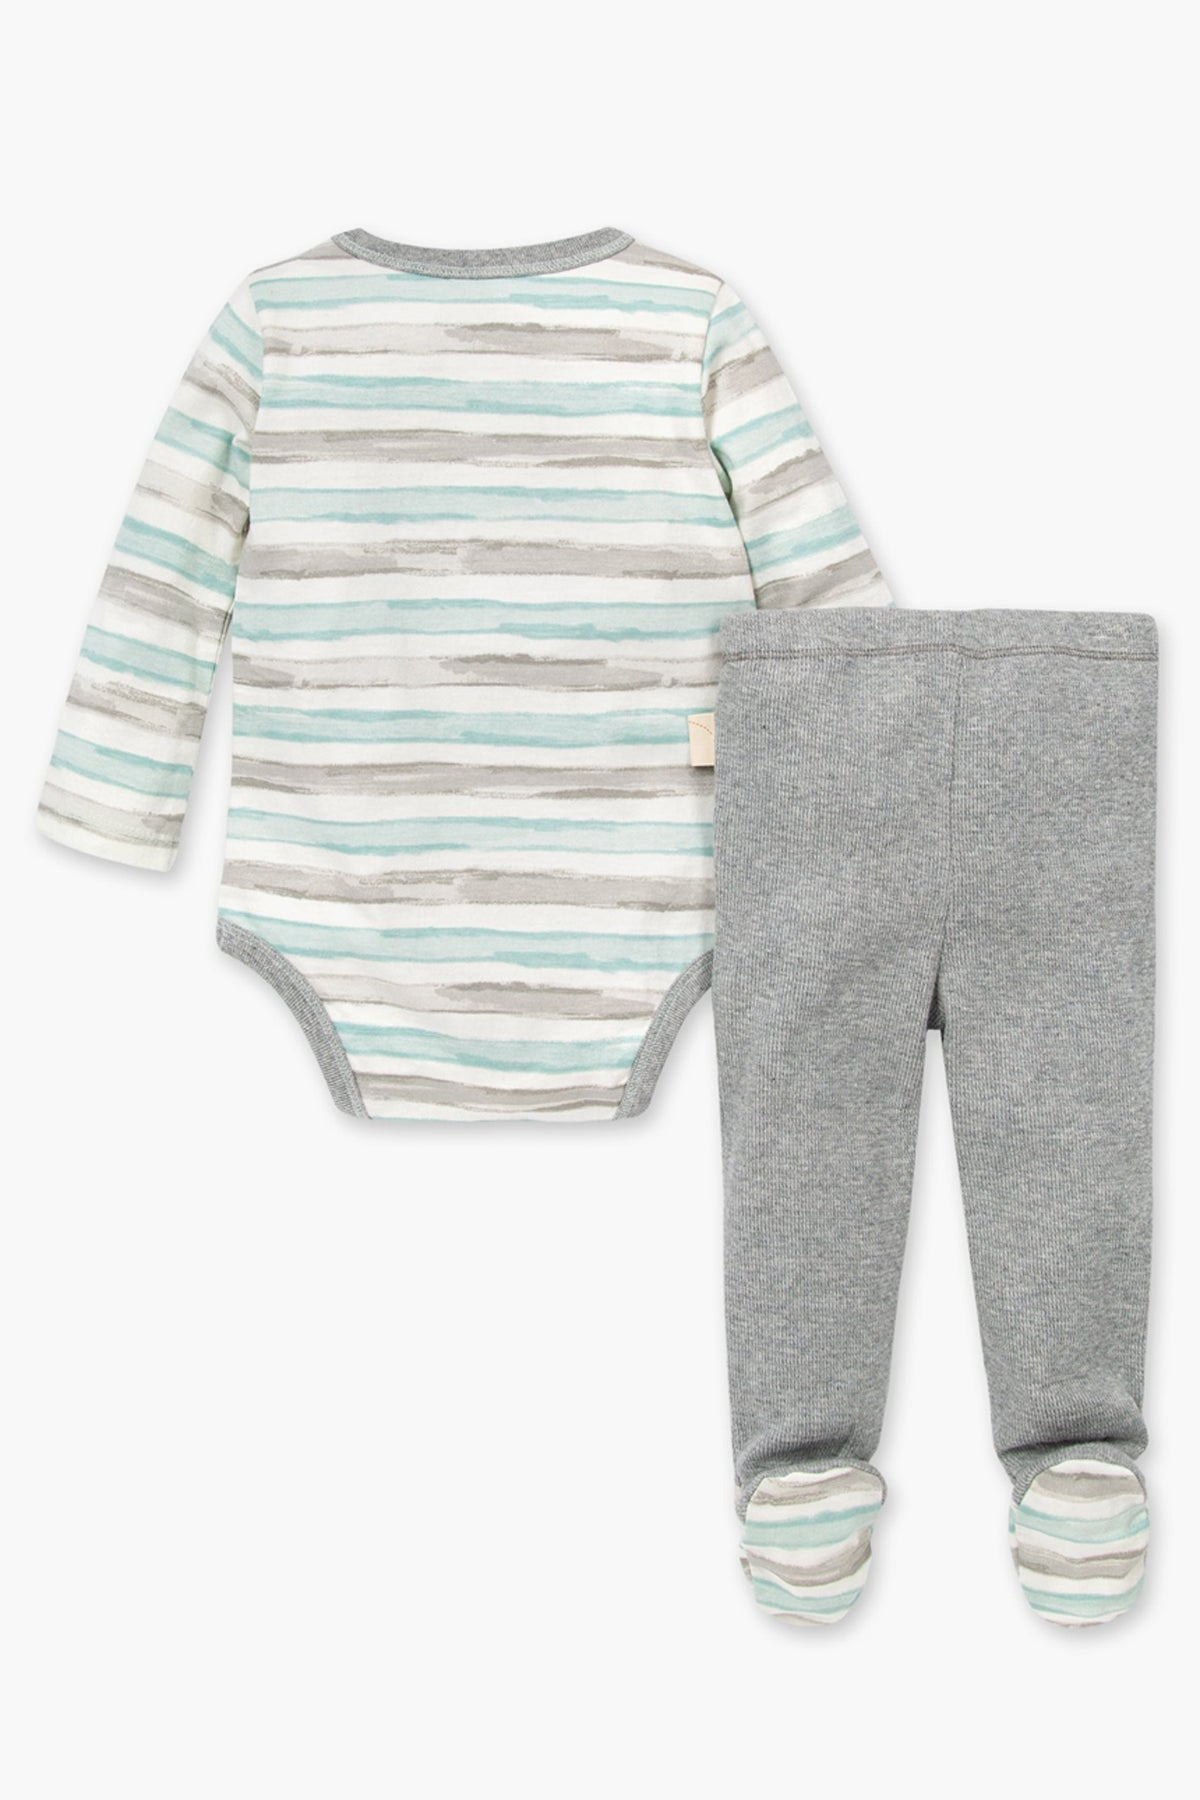 Burt's Bees Tipped Stripe Onesie And Baby Pants Set